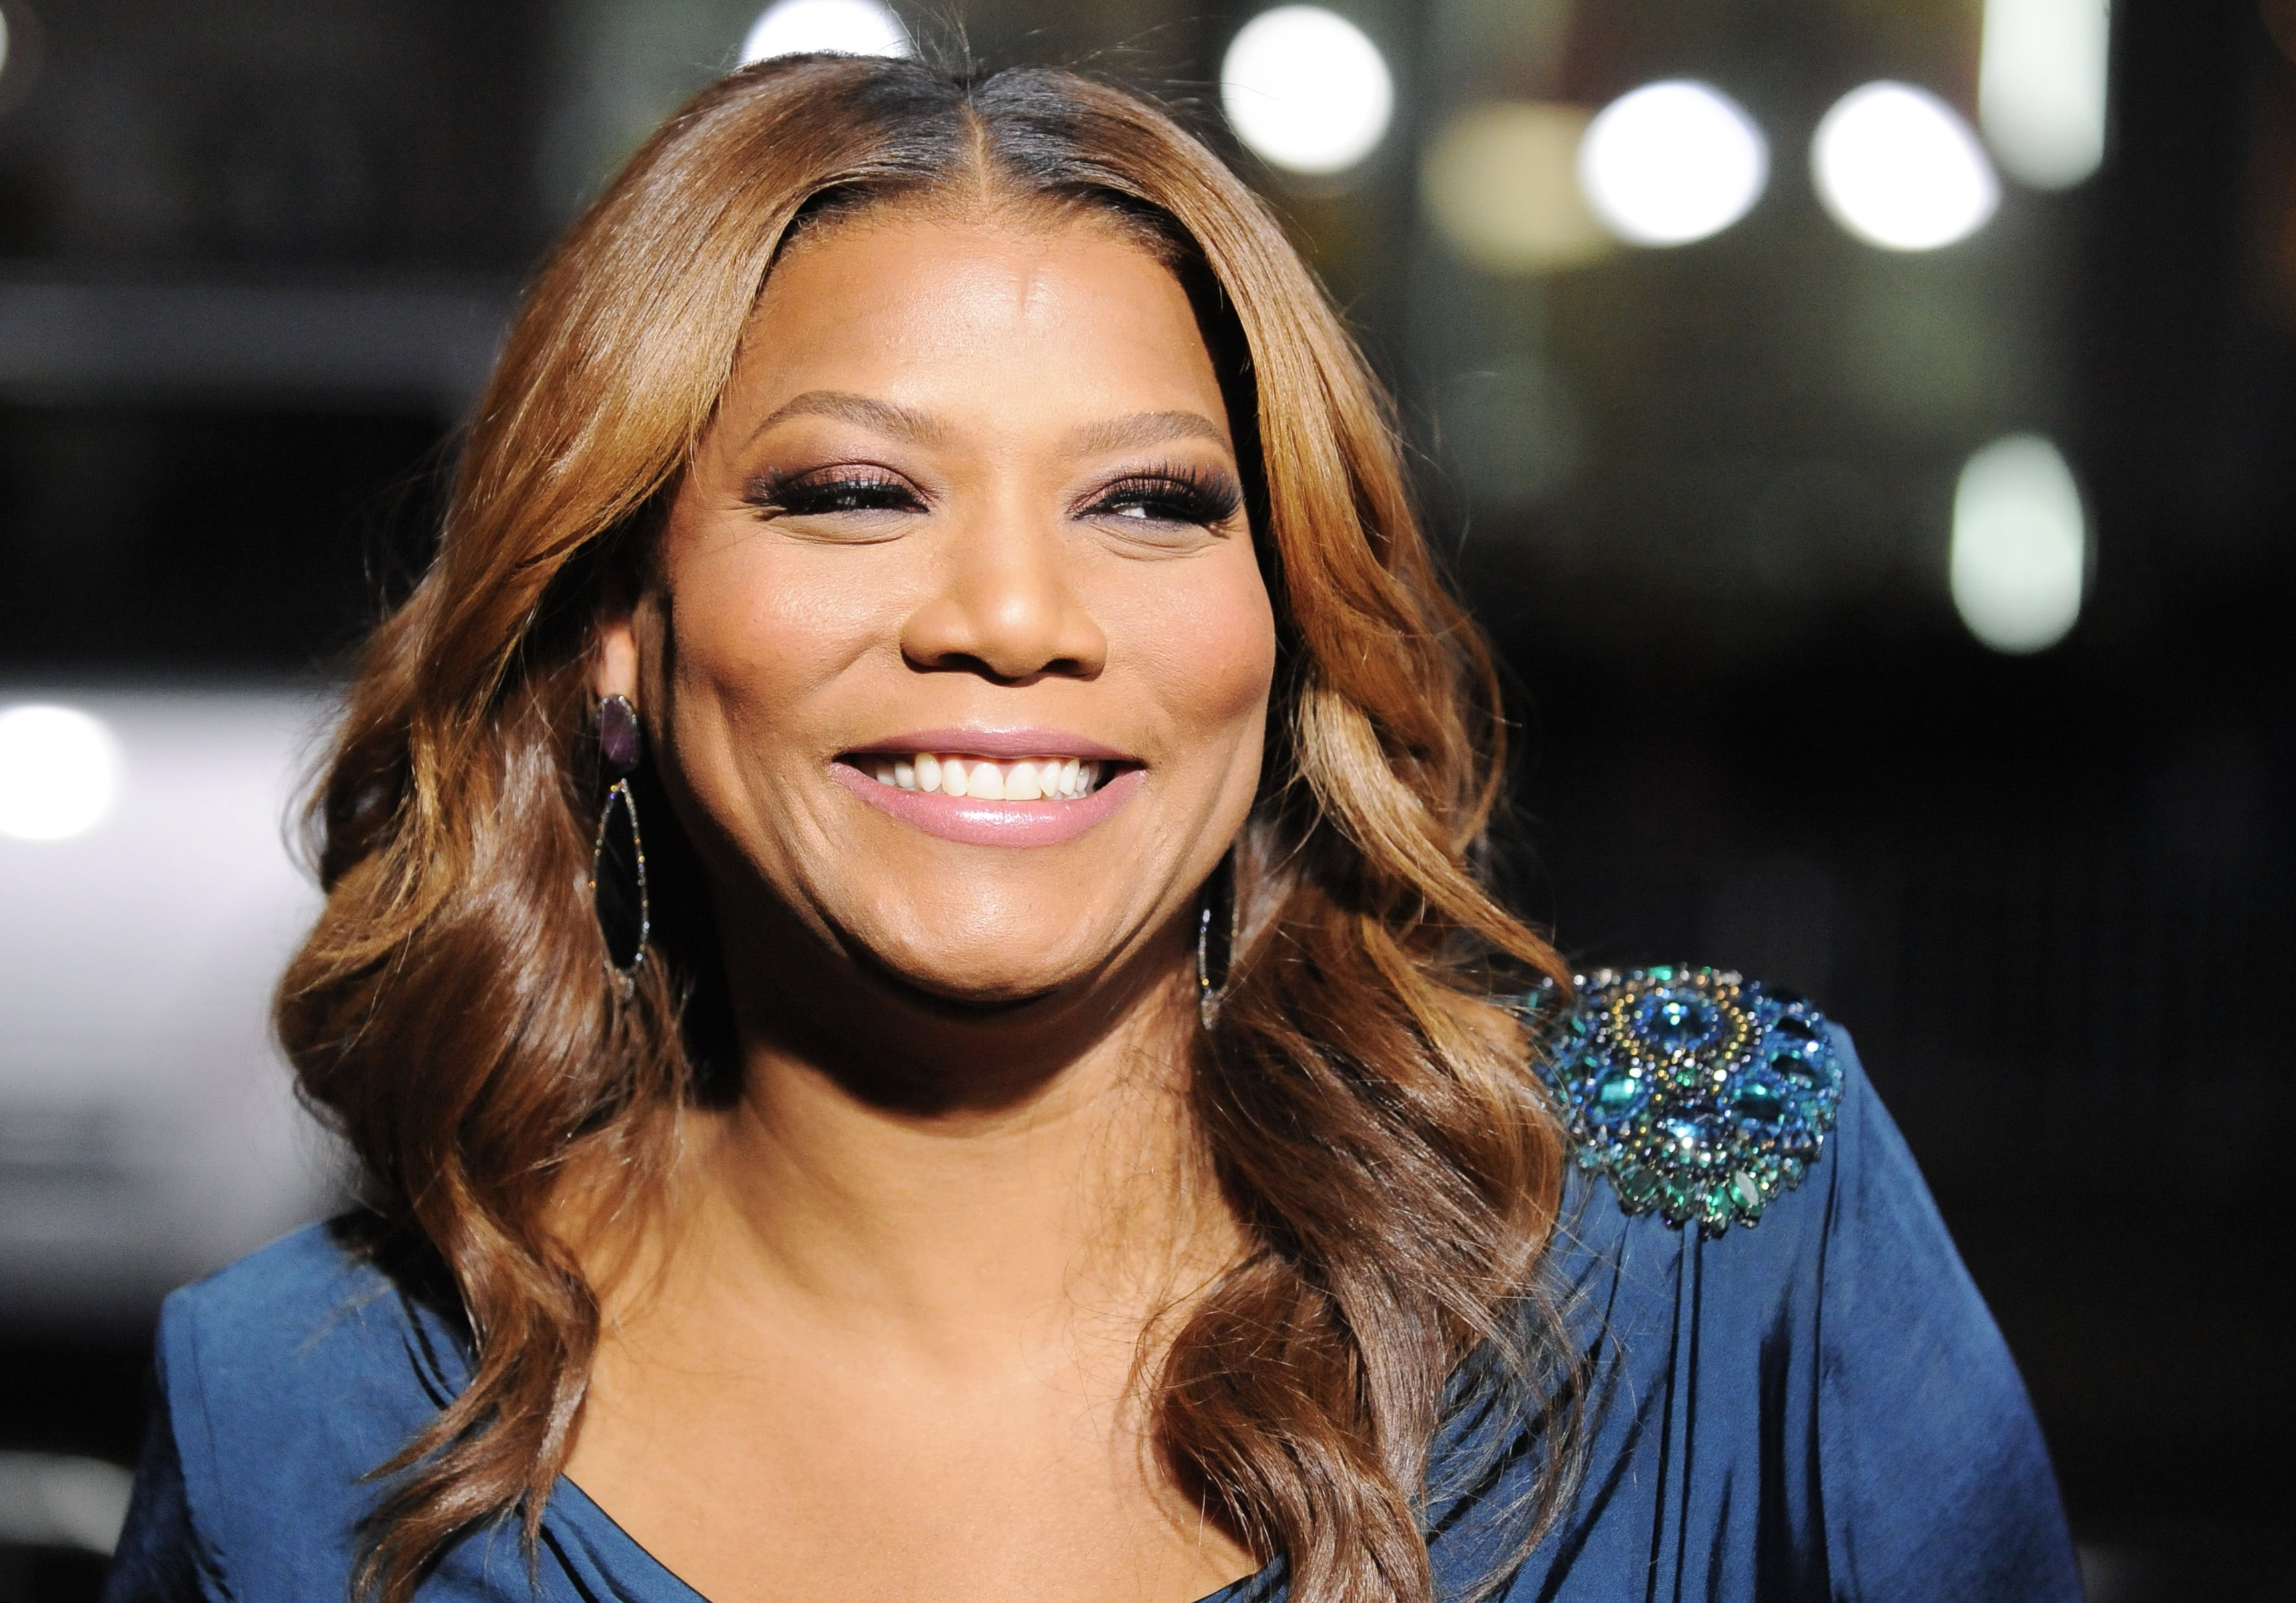 Queen Latifah Best Movies and TV Shows